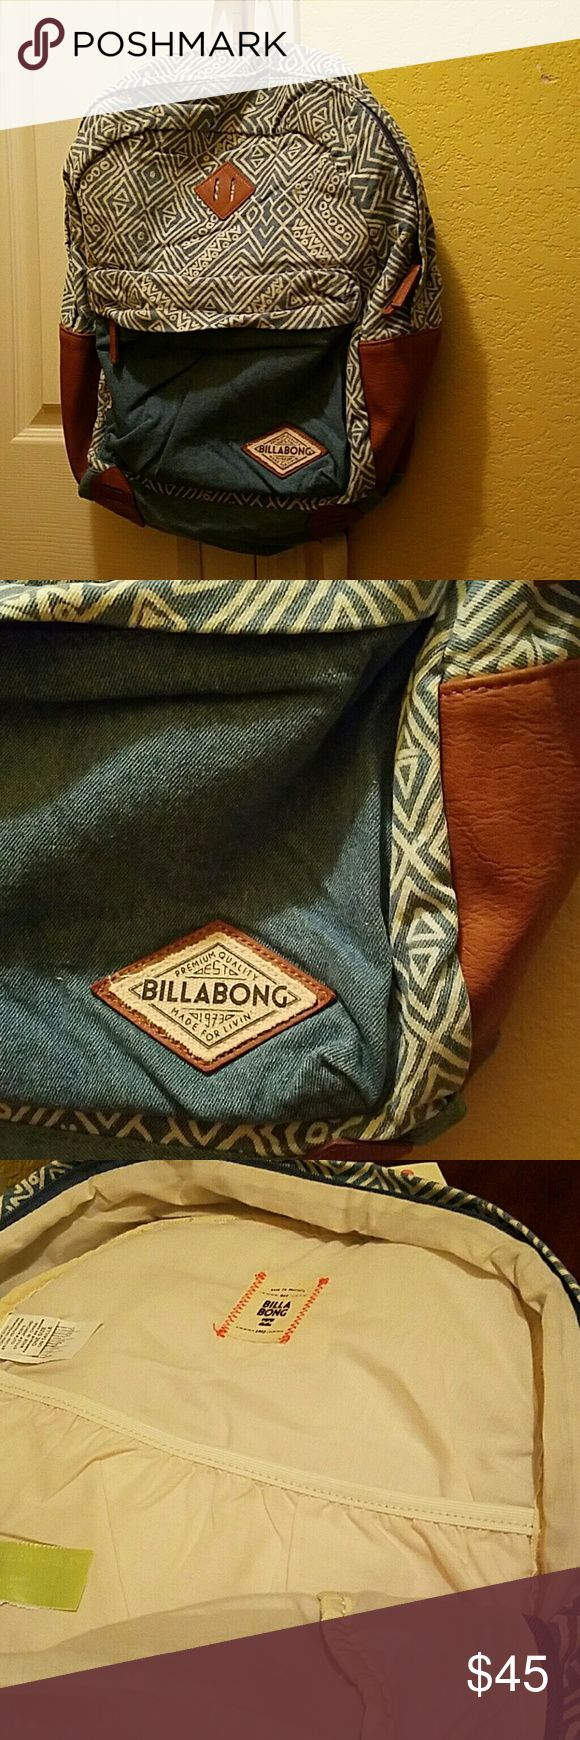 Hidden Trek Denim Backpack by Billabong. Beautiful bag NWT. Essential for travel needs or school. It also has space for laptop. It doesn't have pockets on the side. Bag only has one small pocket on the front and one large pocket. PRICE IS FIRM... Billabong Bags Backpacks